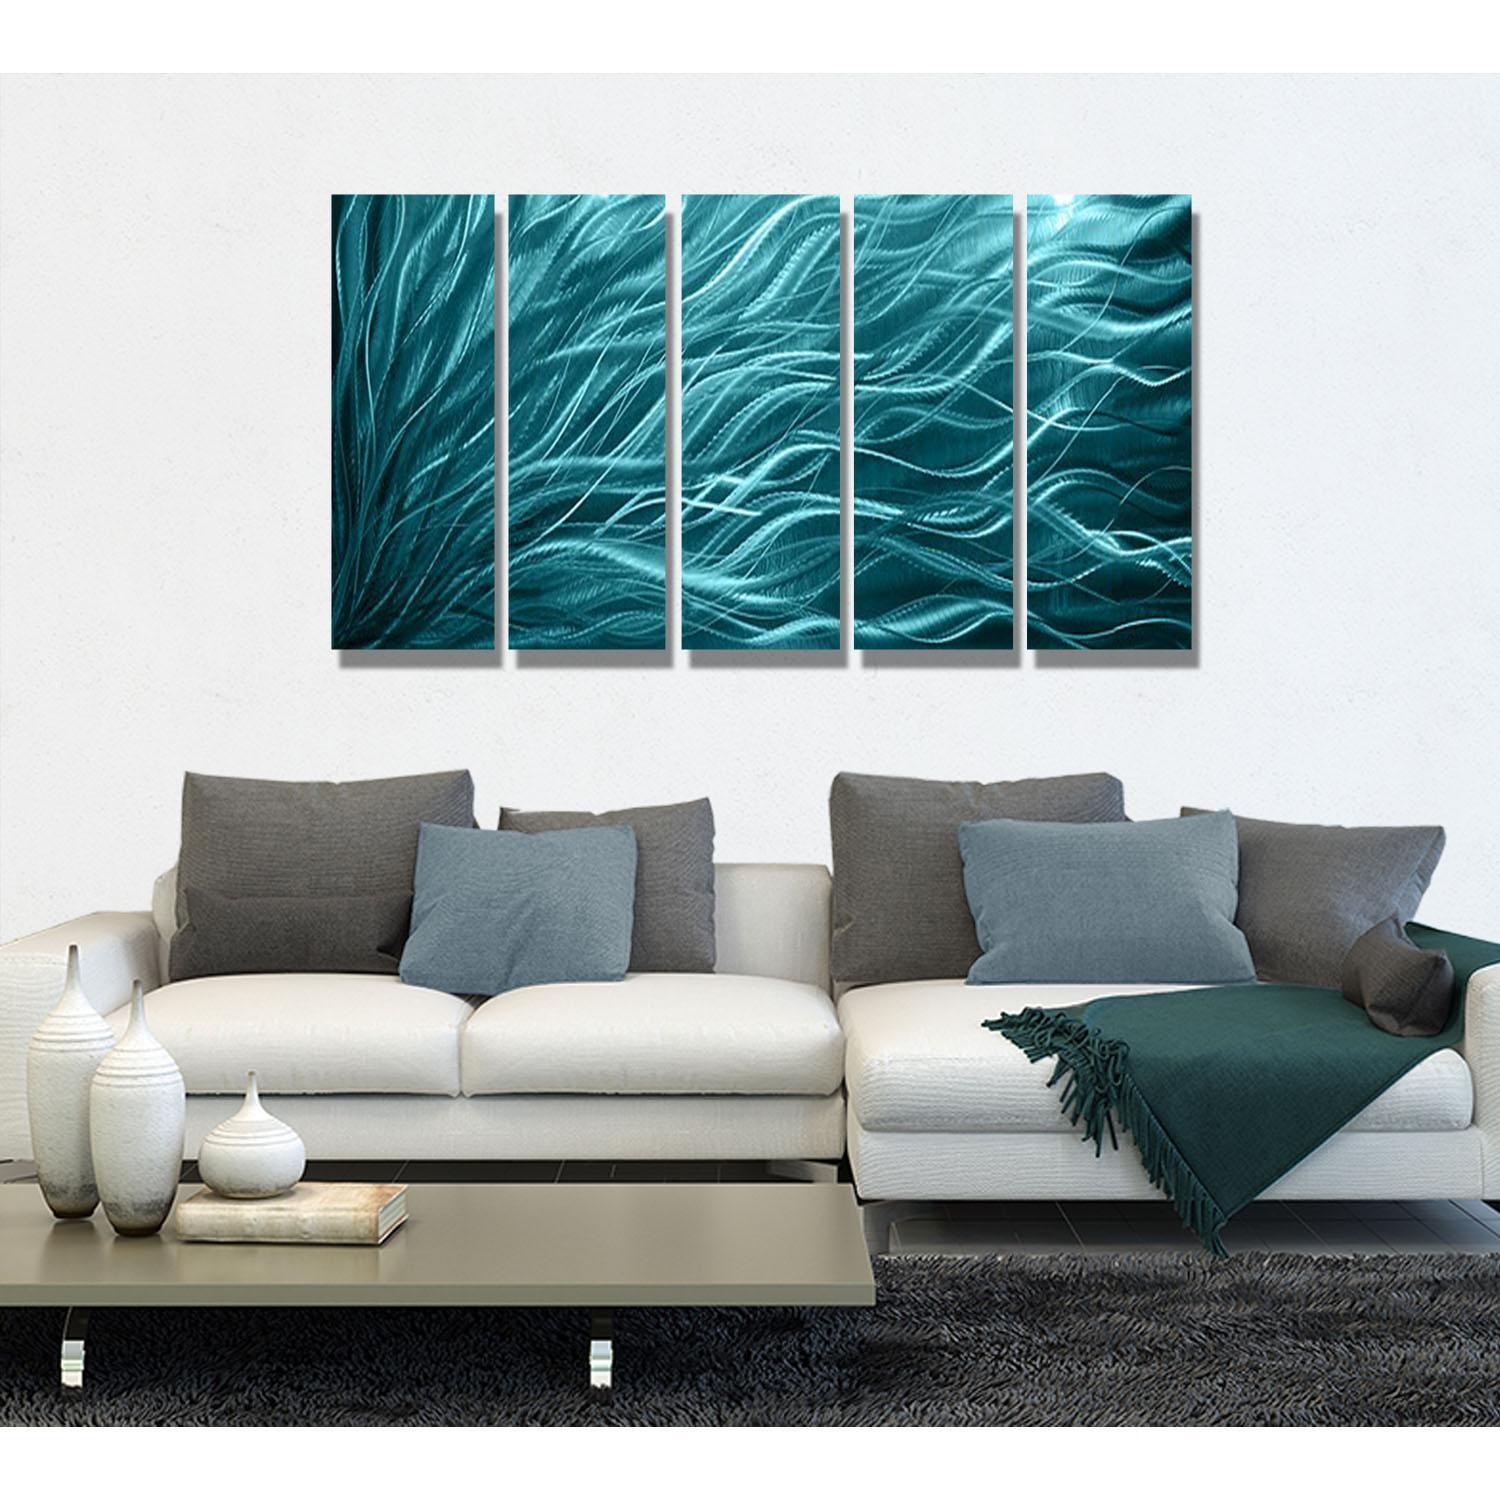 Aqua Sea Grass – Aqua Blue Metal Wall Art – 5 Panel Wall Décor In Teal Metal Wall Art (Image 1 of 20)